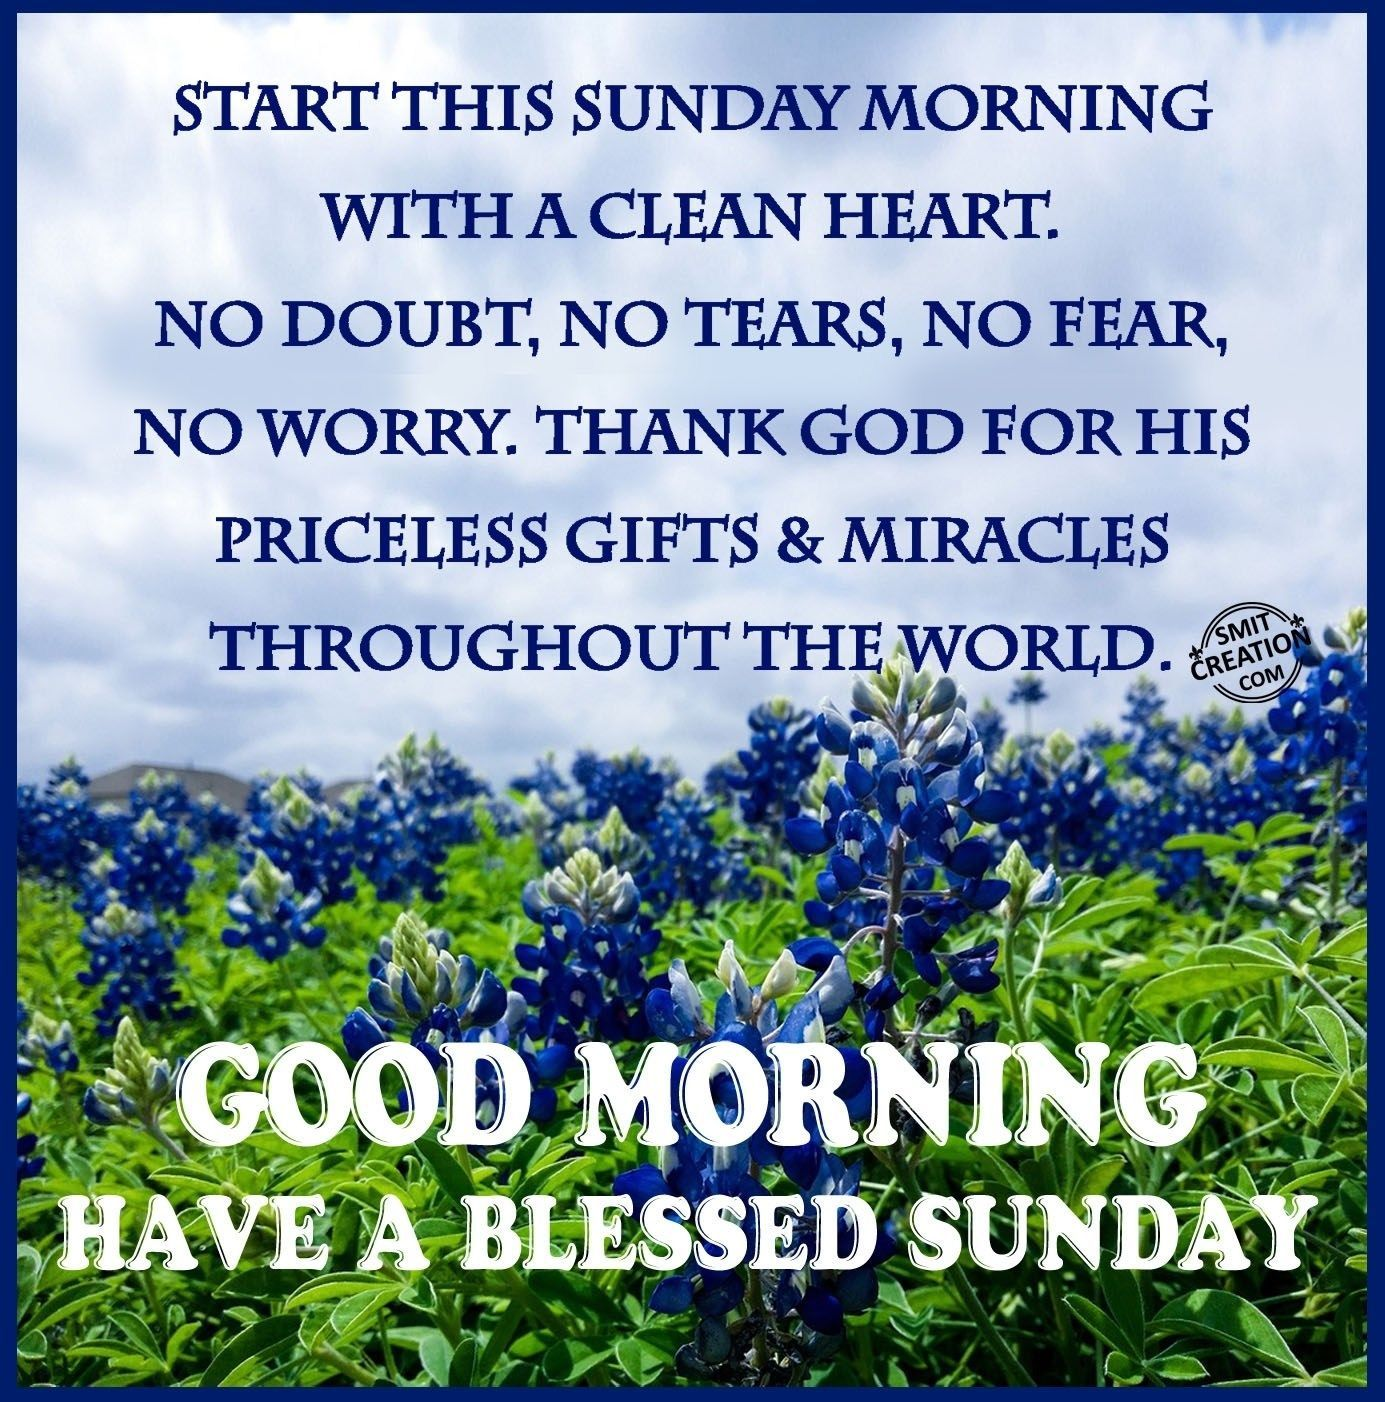 Good Morning Have A Blessed Sunday Good Morning Sunday Sunday